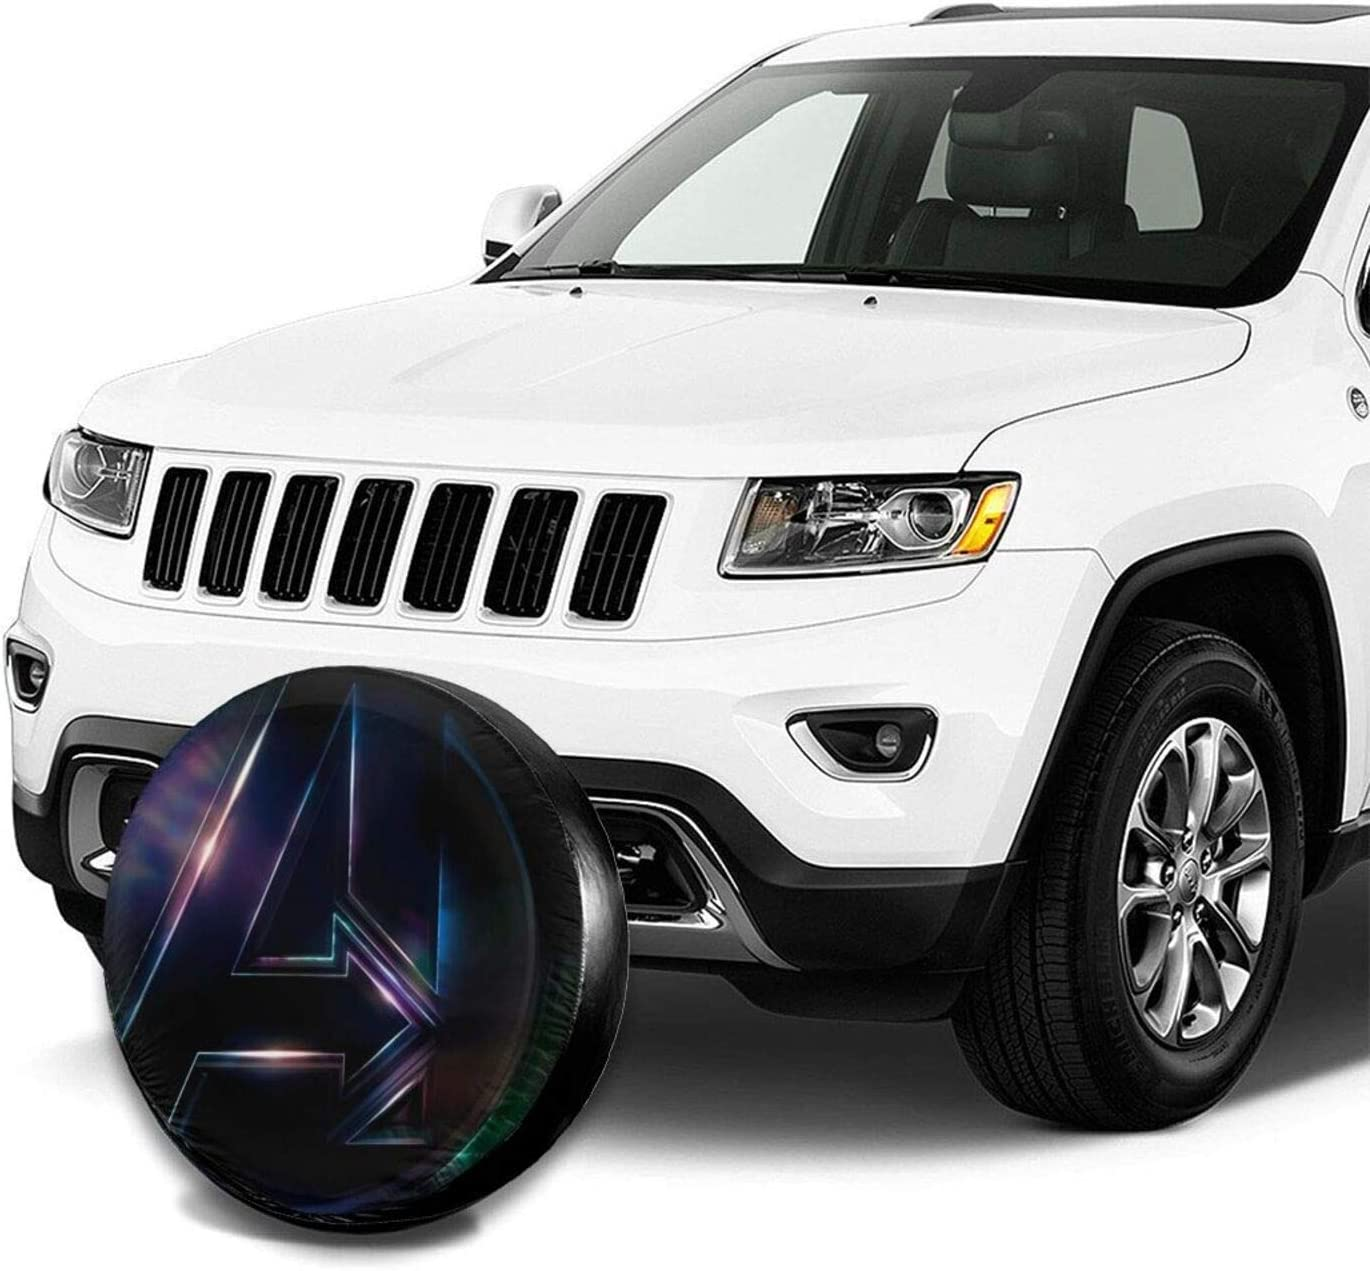 JINDAO Av-en-ger Logo Spare Tire Covers dust-Proof Waterproof Sun Protection Protecto Sun Rain Snow for Truck//SUV//Trailer//Camper//RV Tire Covers 14 inch